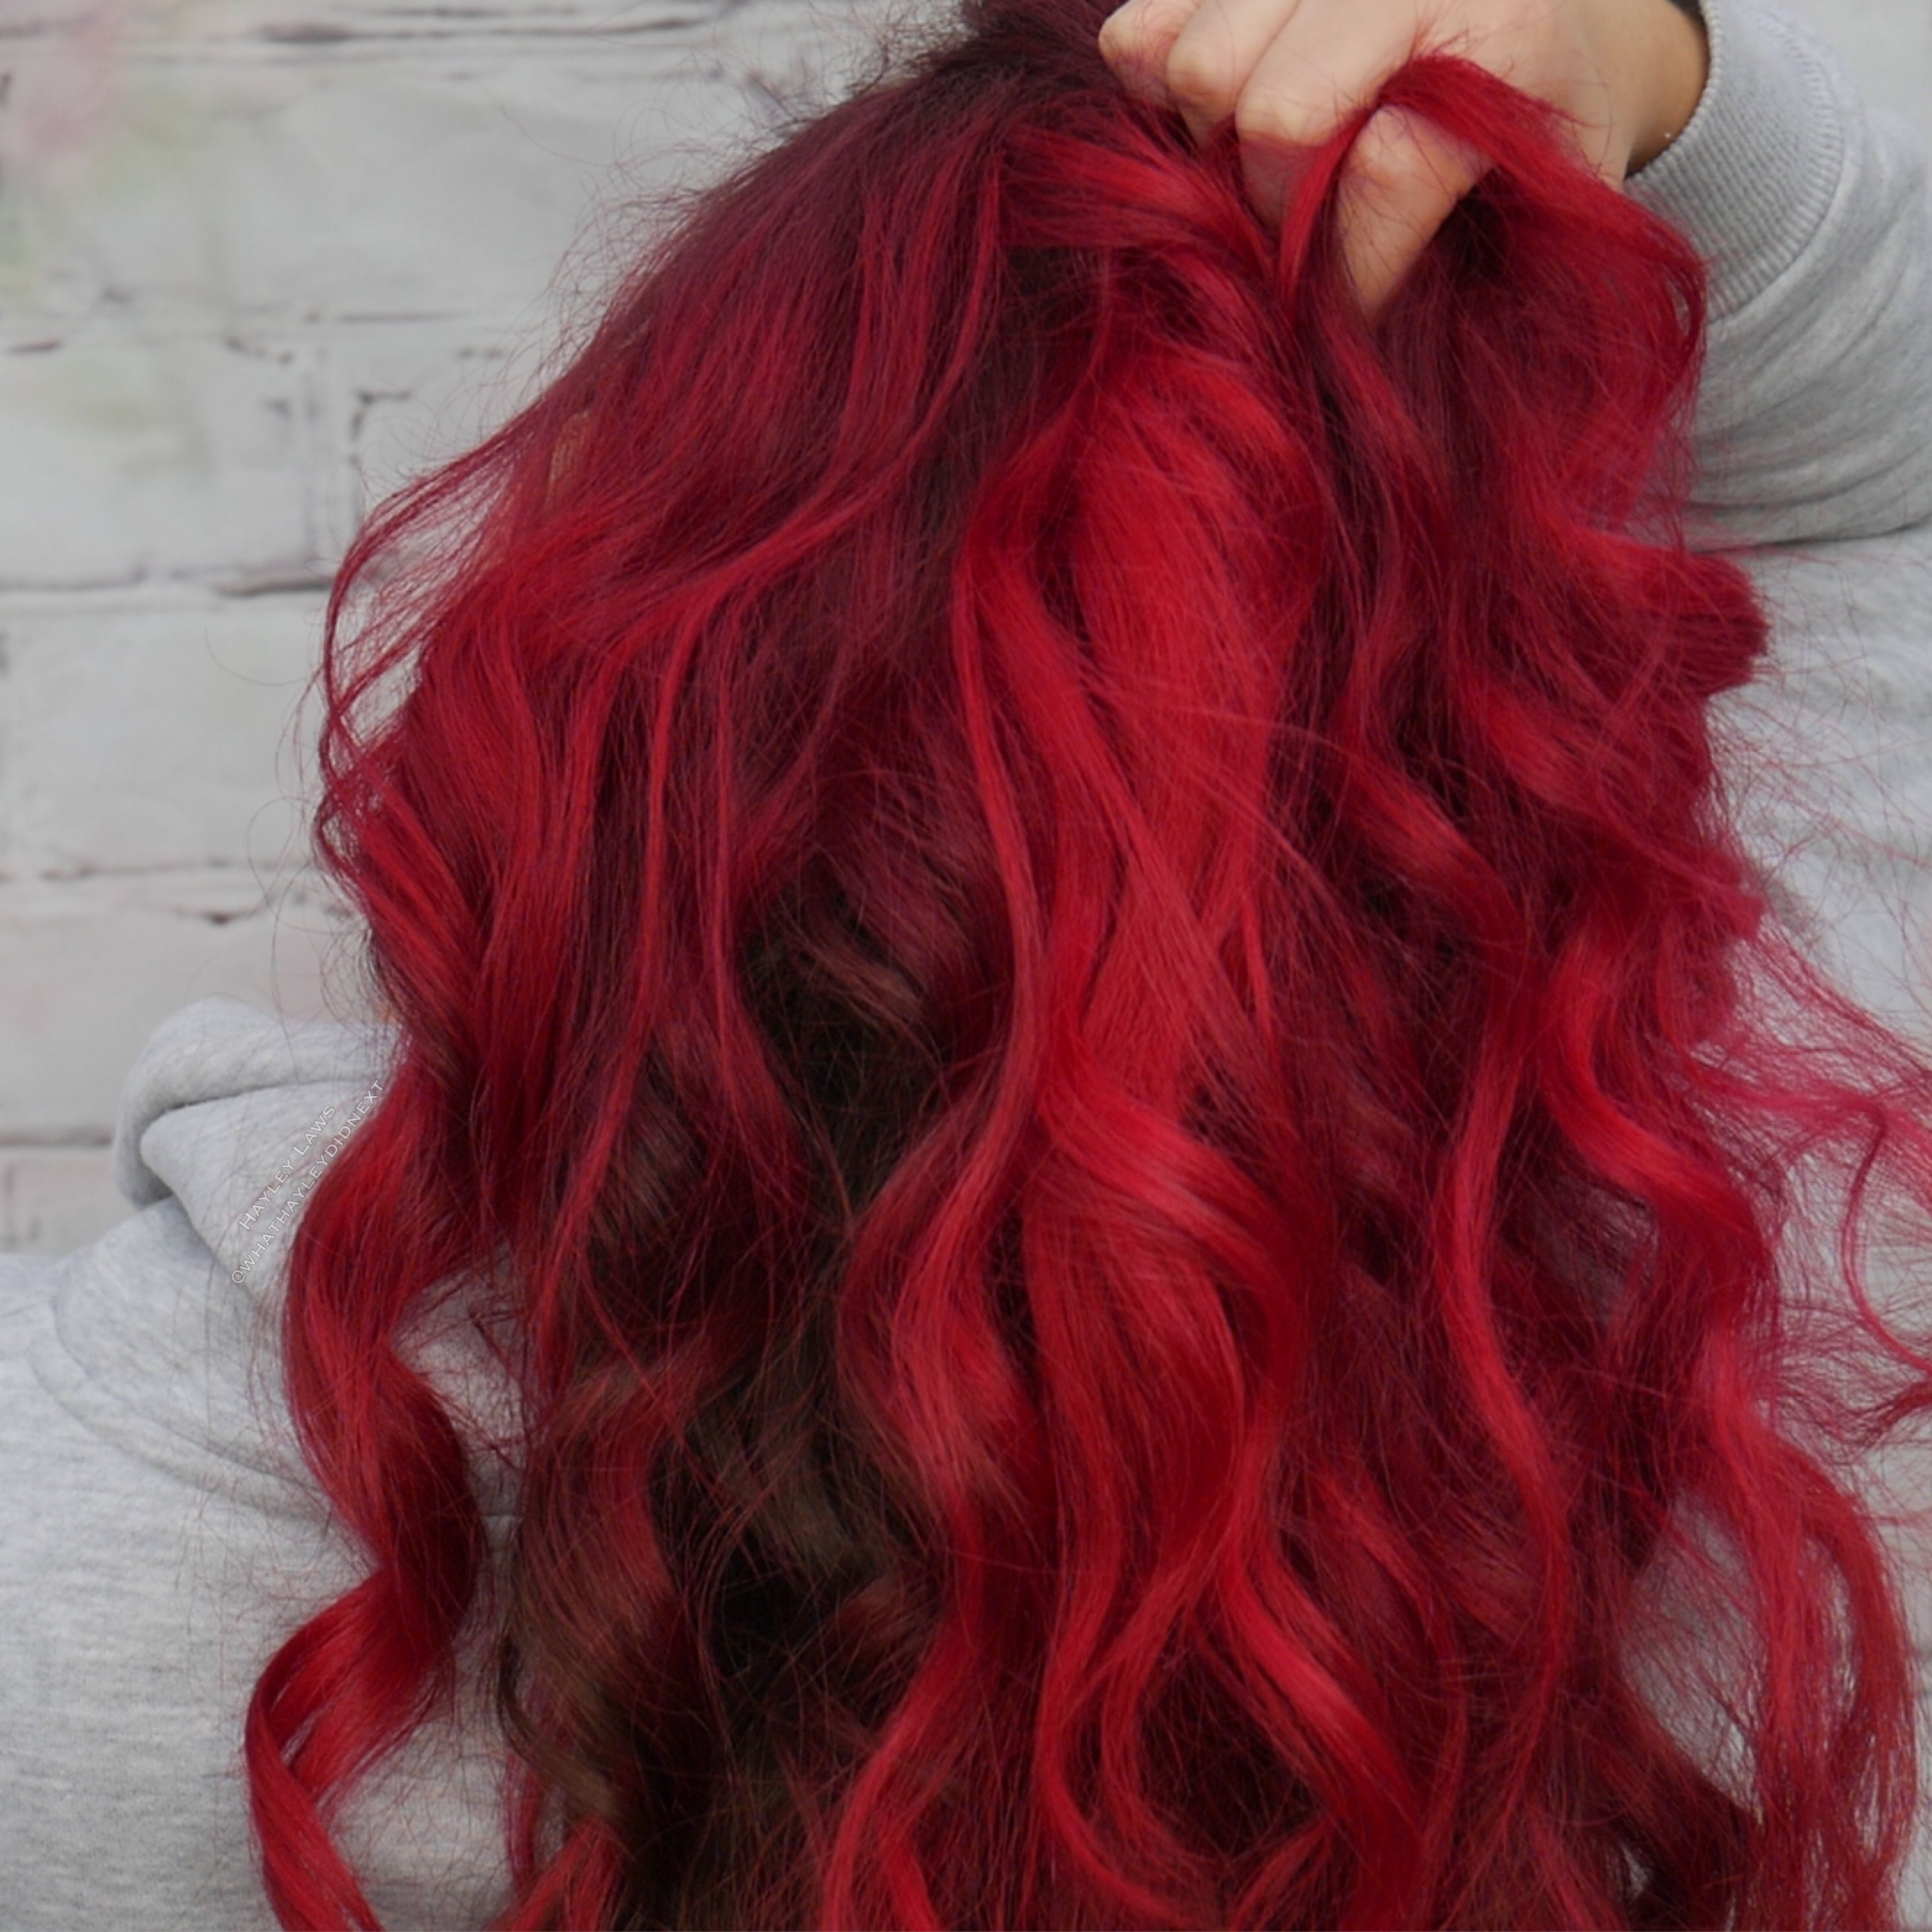 Manic Panic Red Head Vampire Red And Rock And Roll Ombre By Hayley Laws Brown Ombre Hair Color Ombre Hair Blonde Manic Panic Hair Color